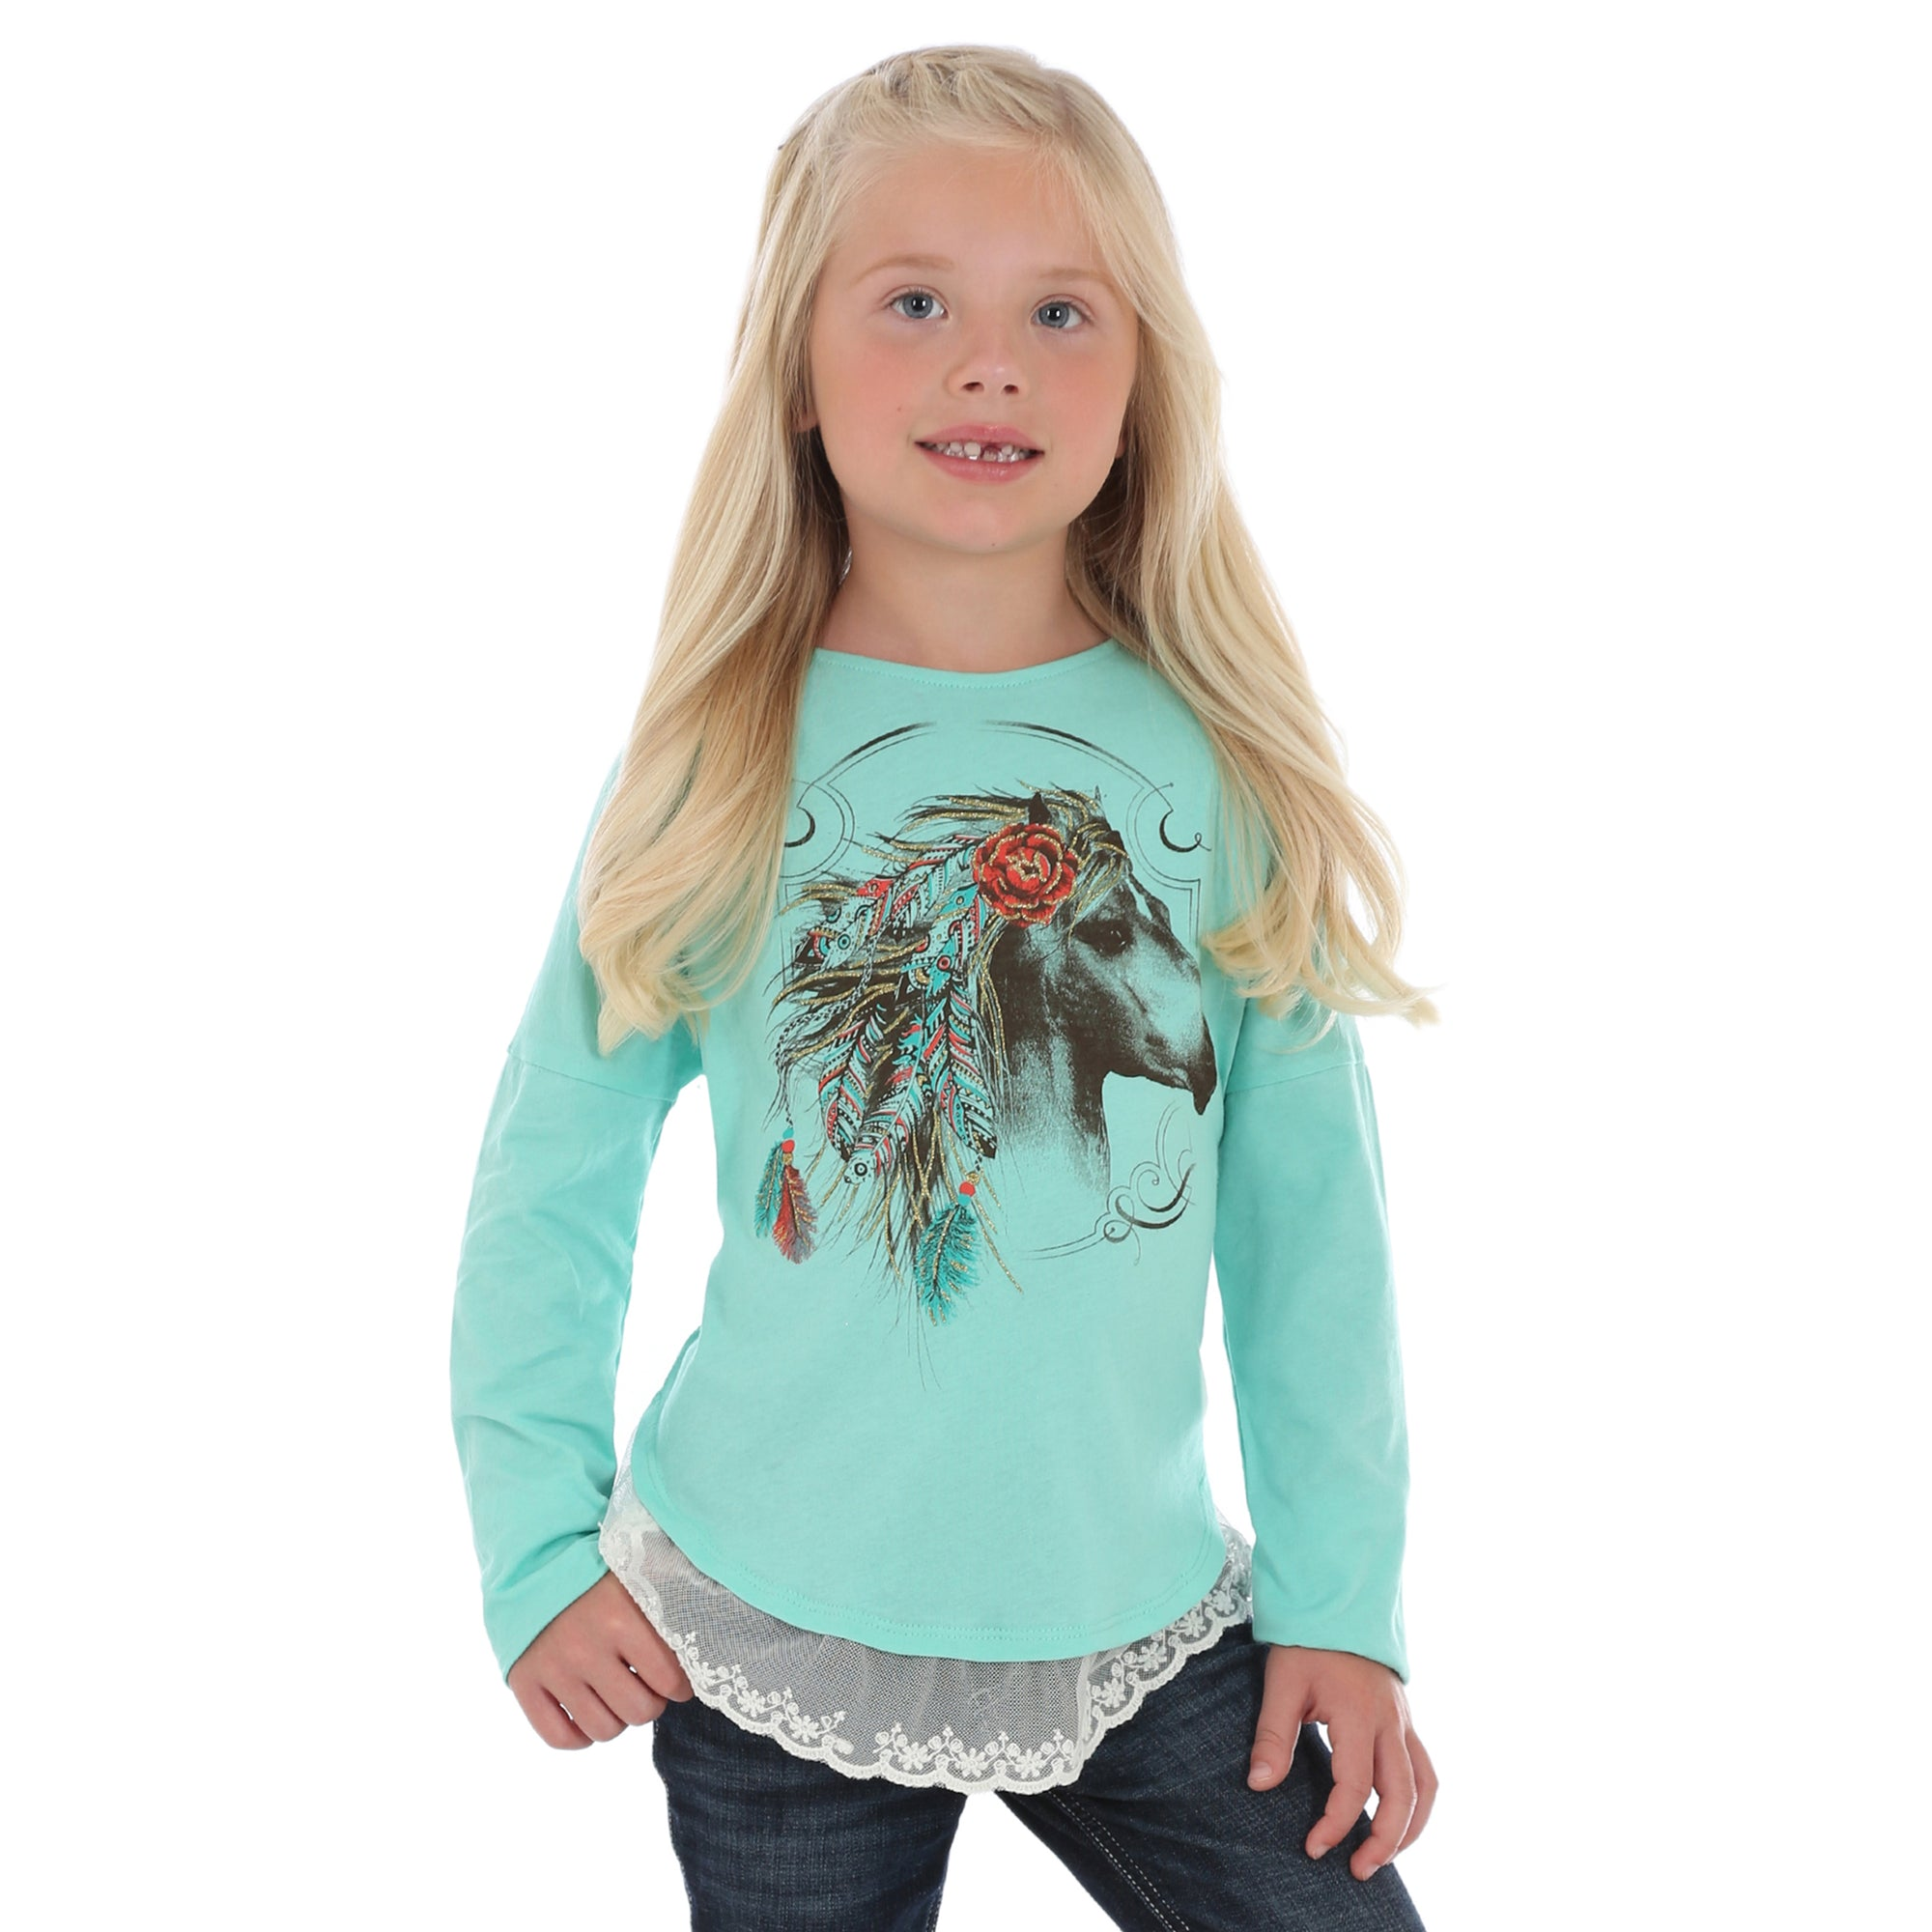 Wrangler Girl's Long Sleeve Horse Screen Print Shirt